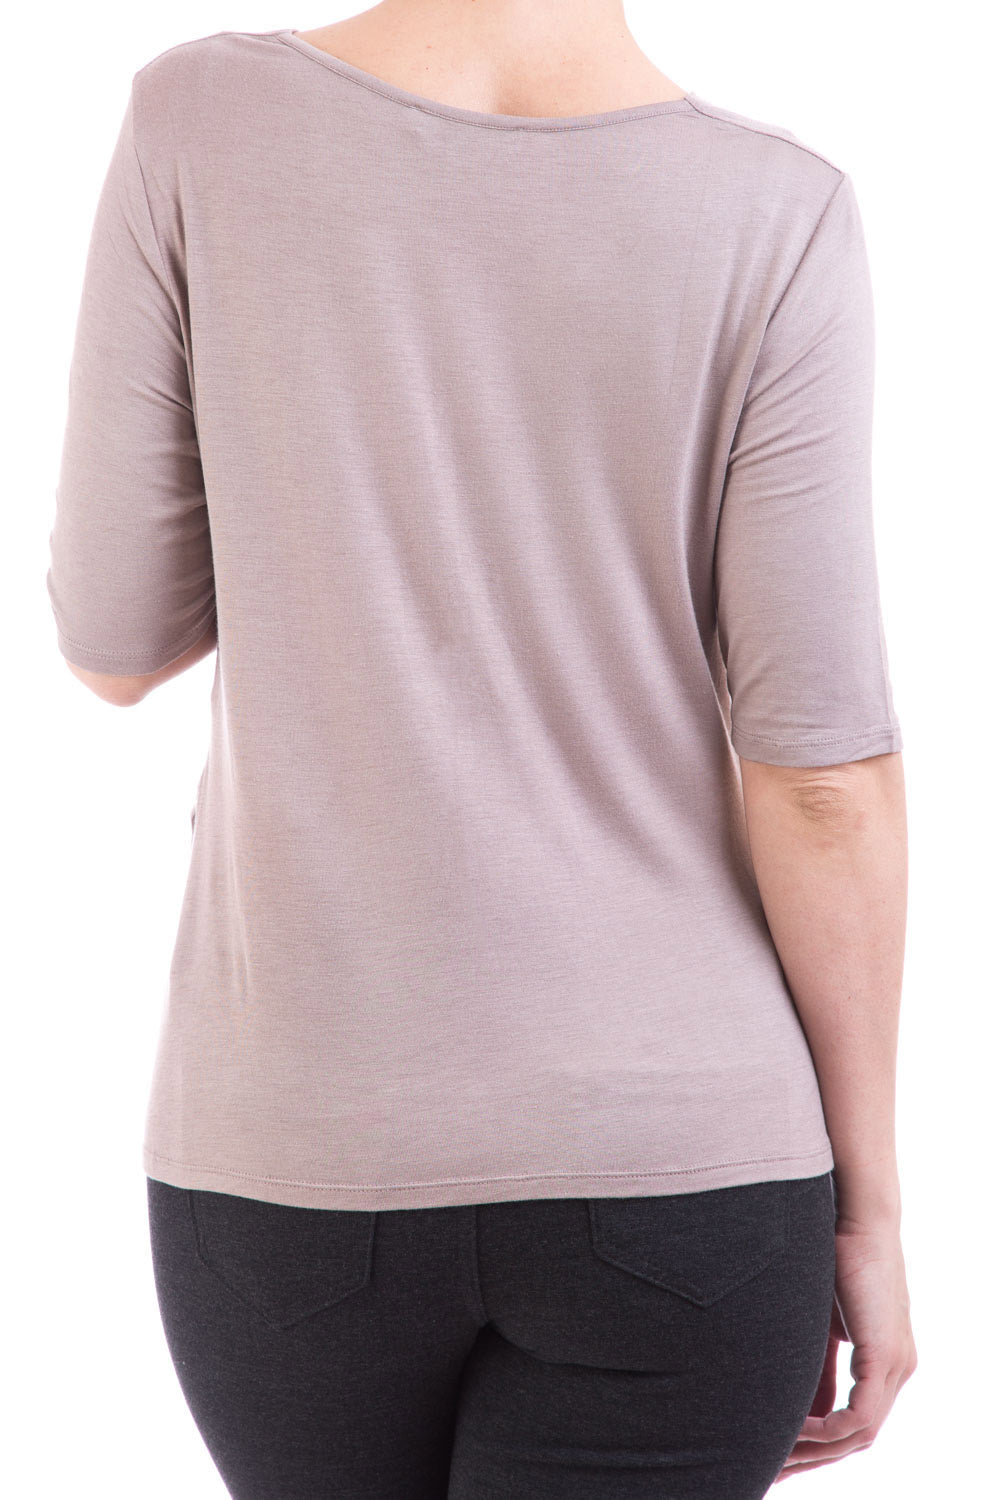 Type 2 Soft Spoken Top in Taupe